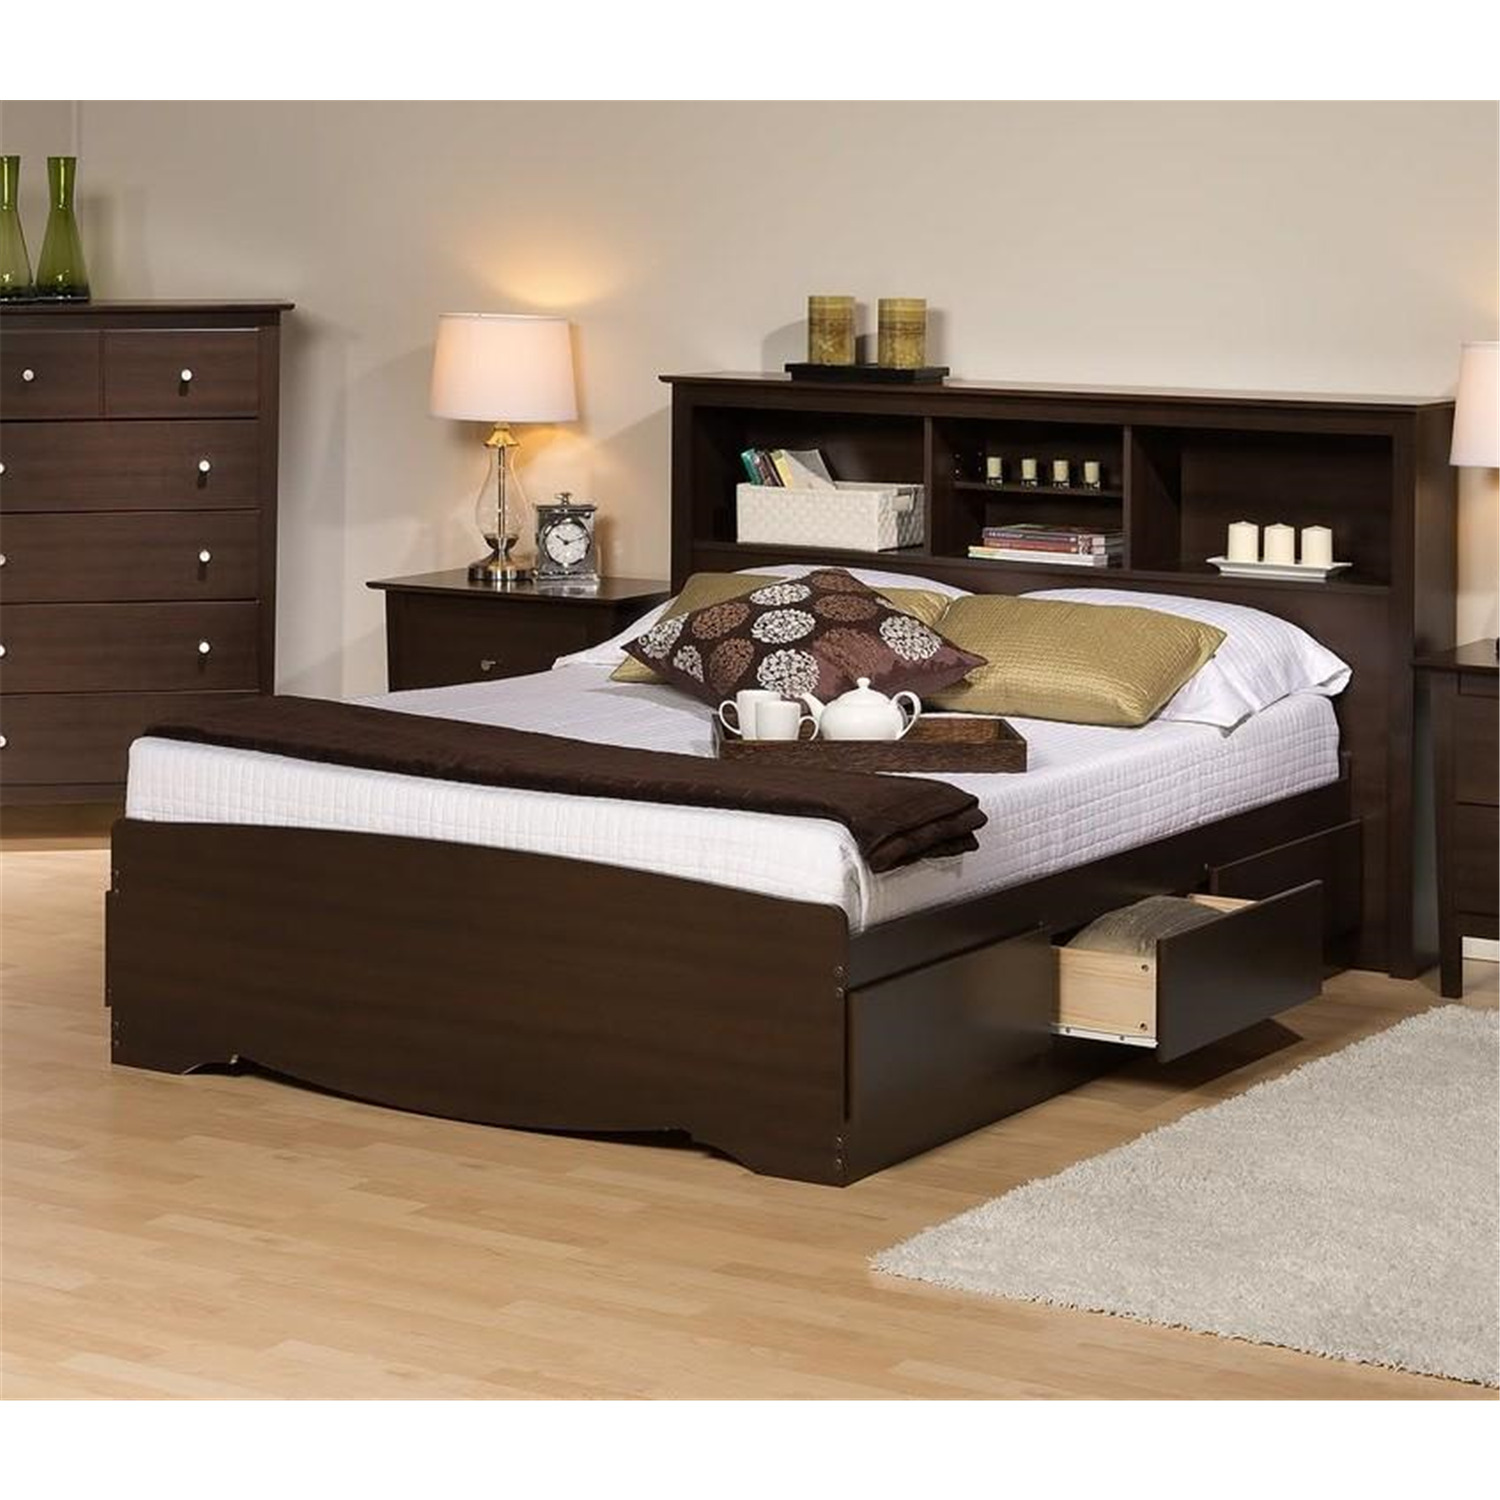 platform storage bed w bookcase headboard ojcommerce. Black Bedroom Furniture Sets. Home Design Ideas